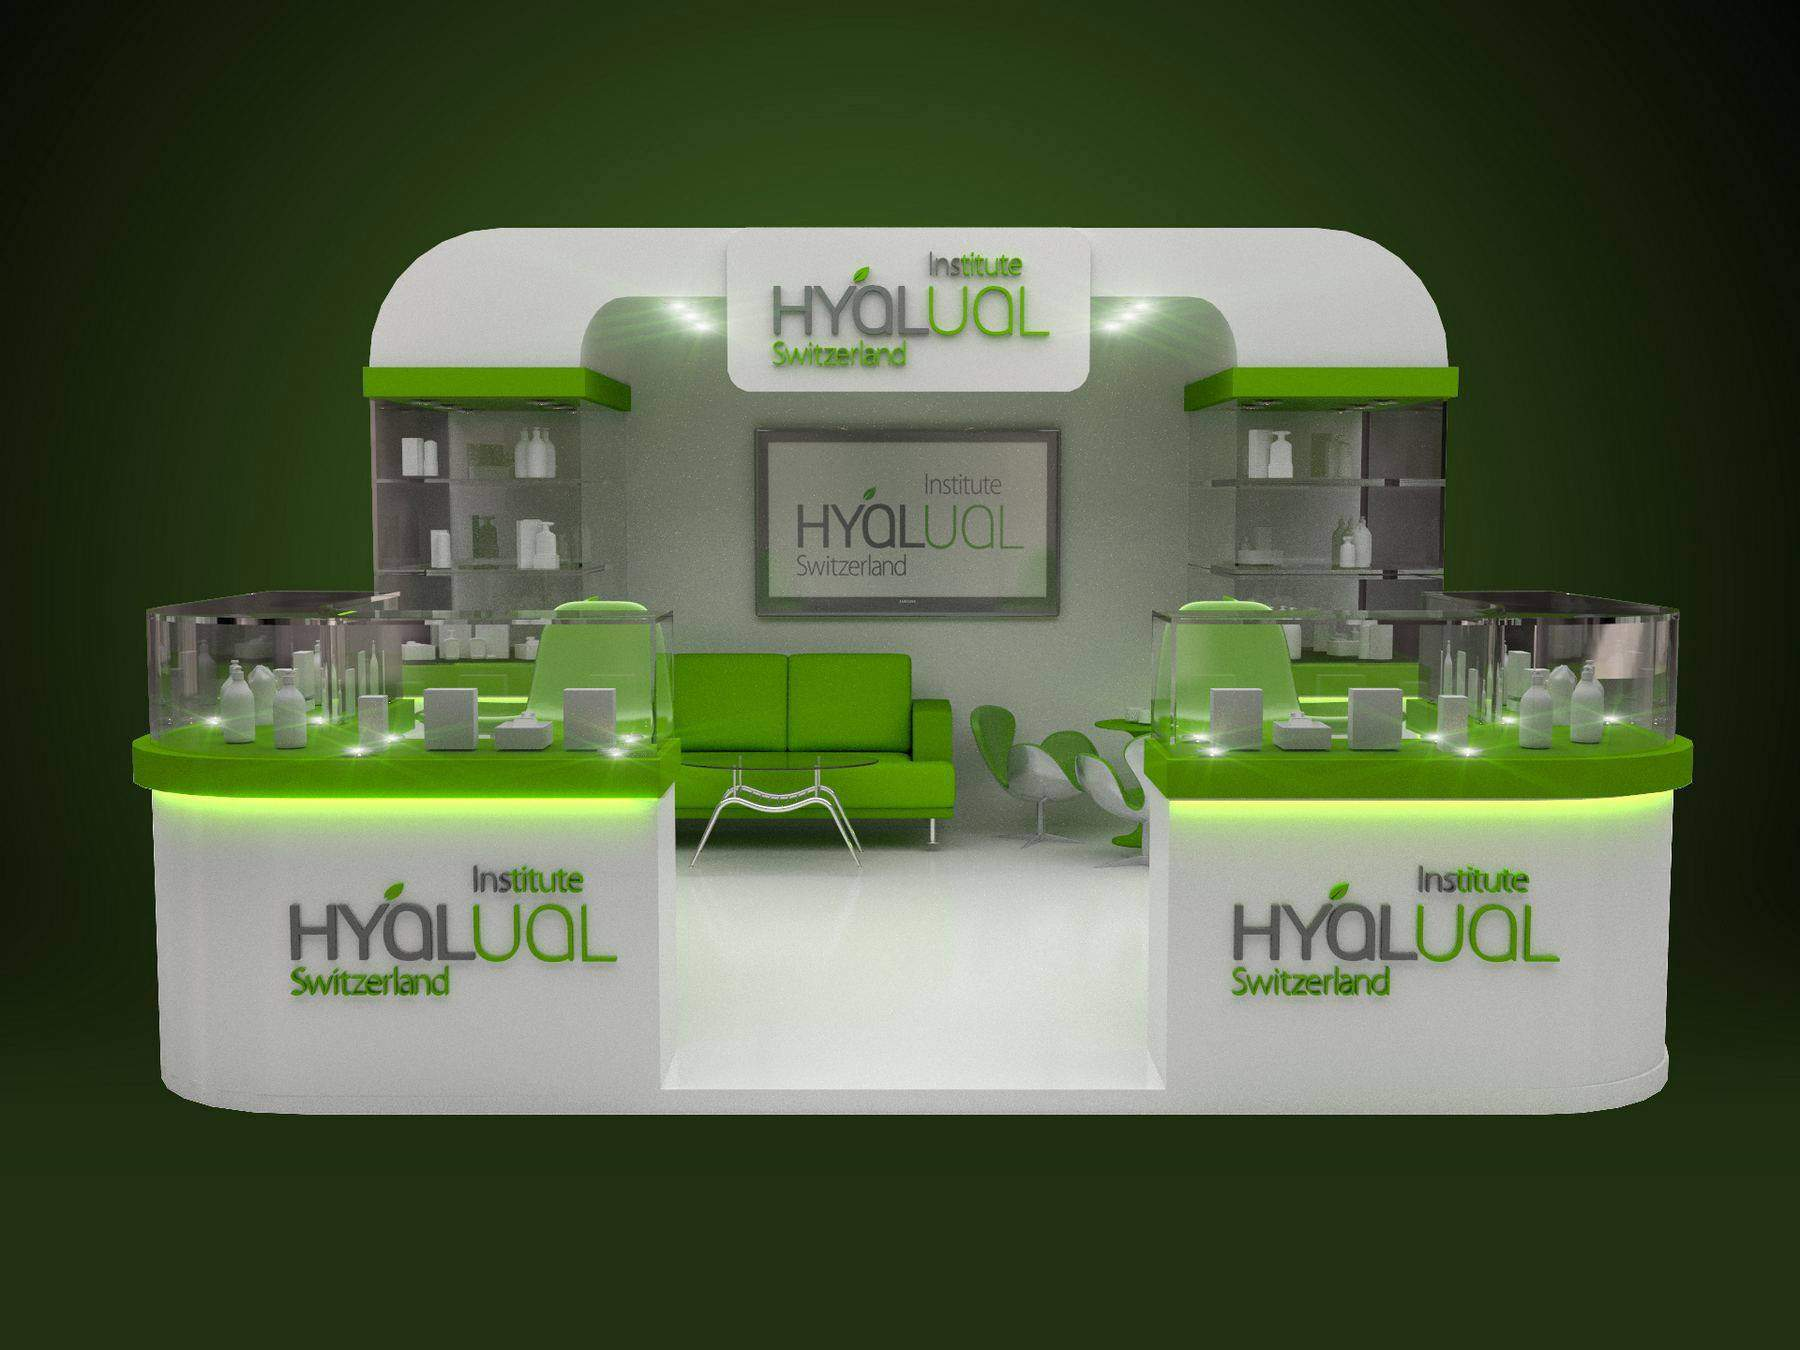 Exhibition stand design and modeling portfolio